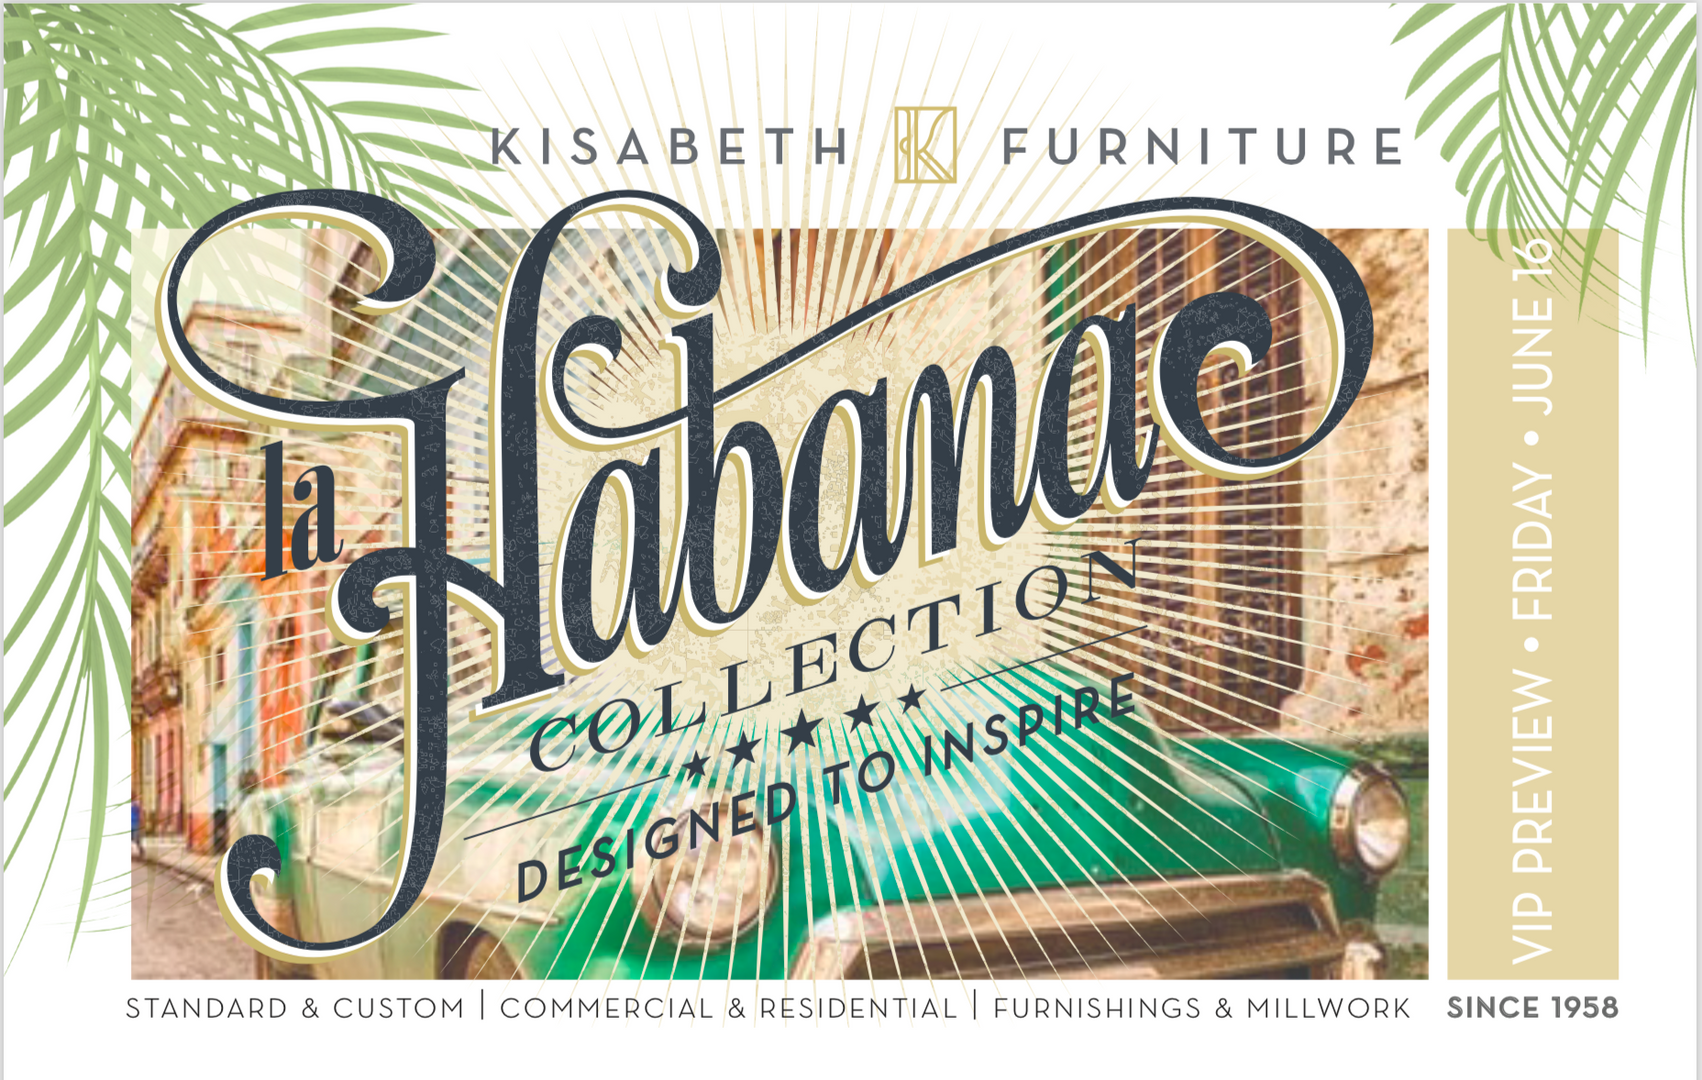 La Habana Collection Invite - Kisabeth Furniture (2018)